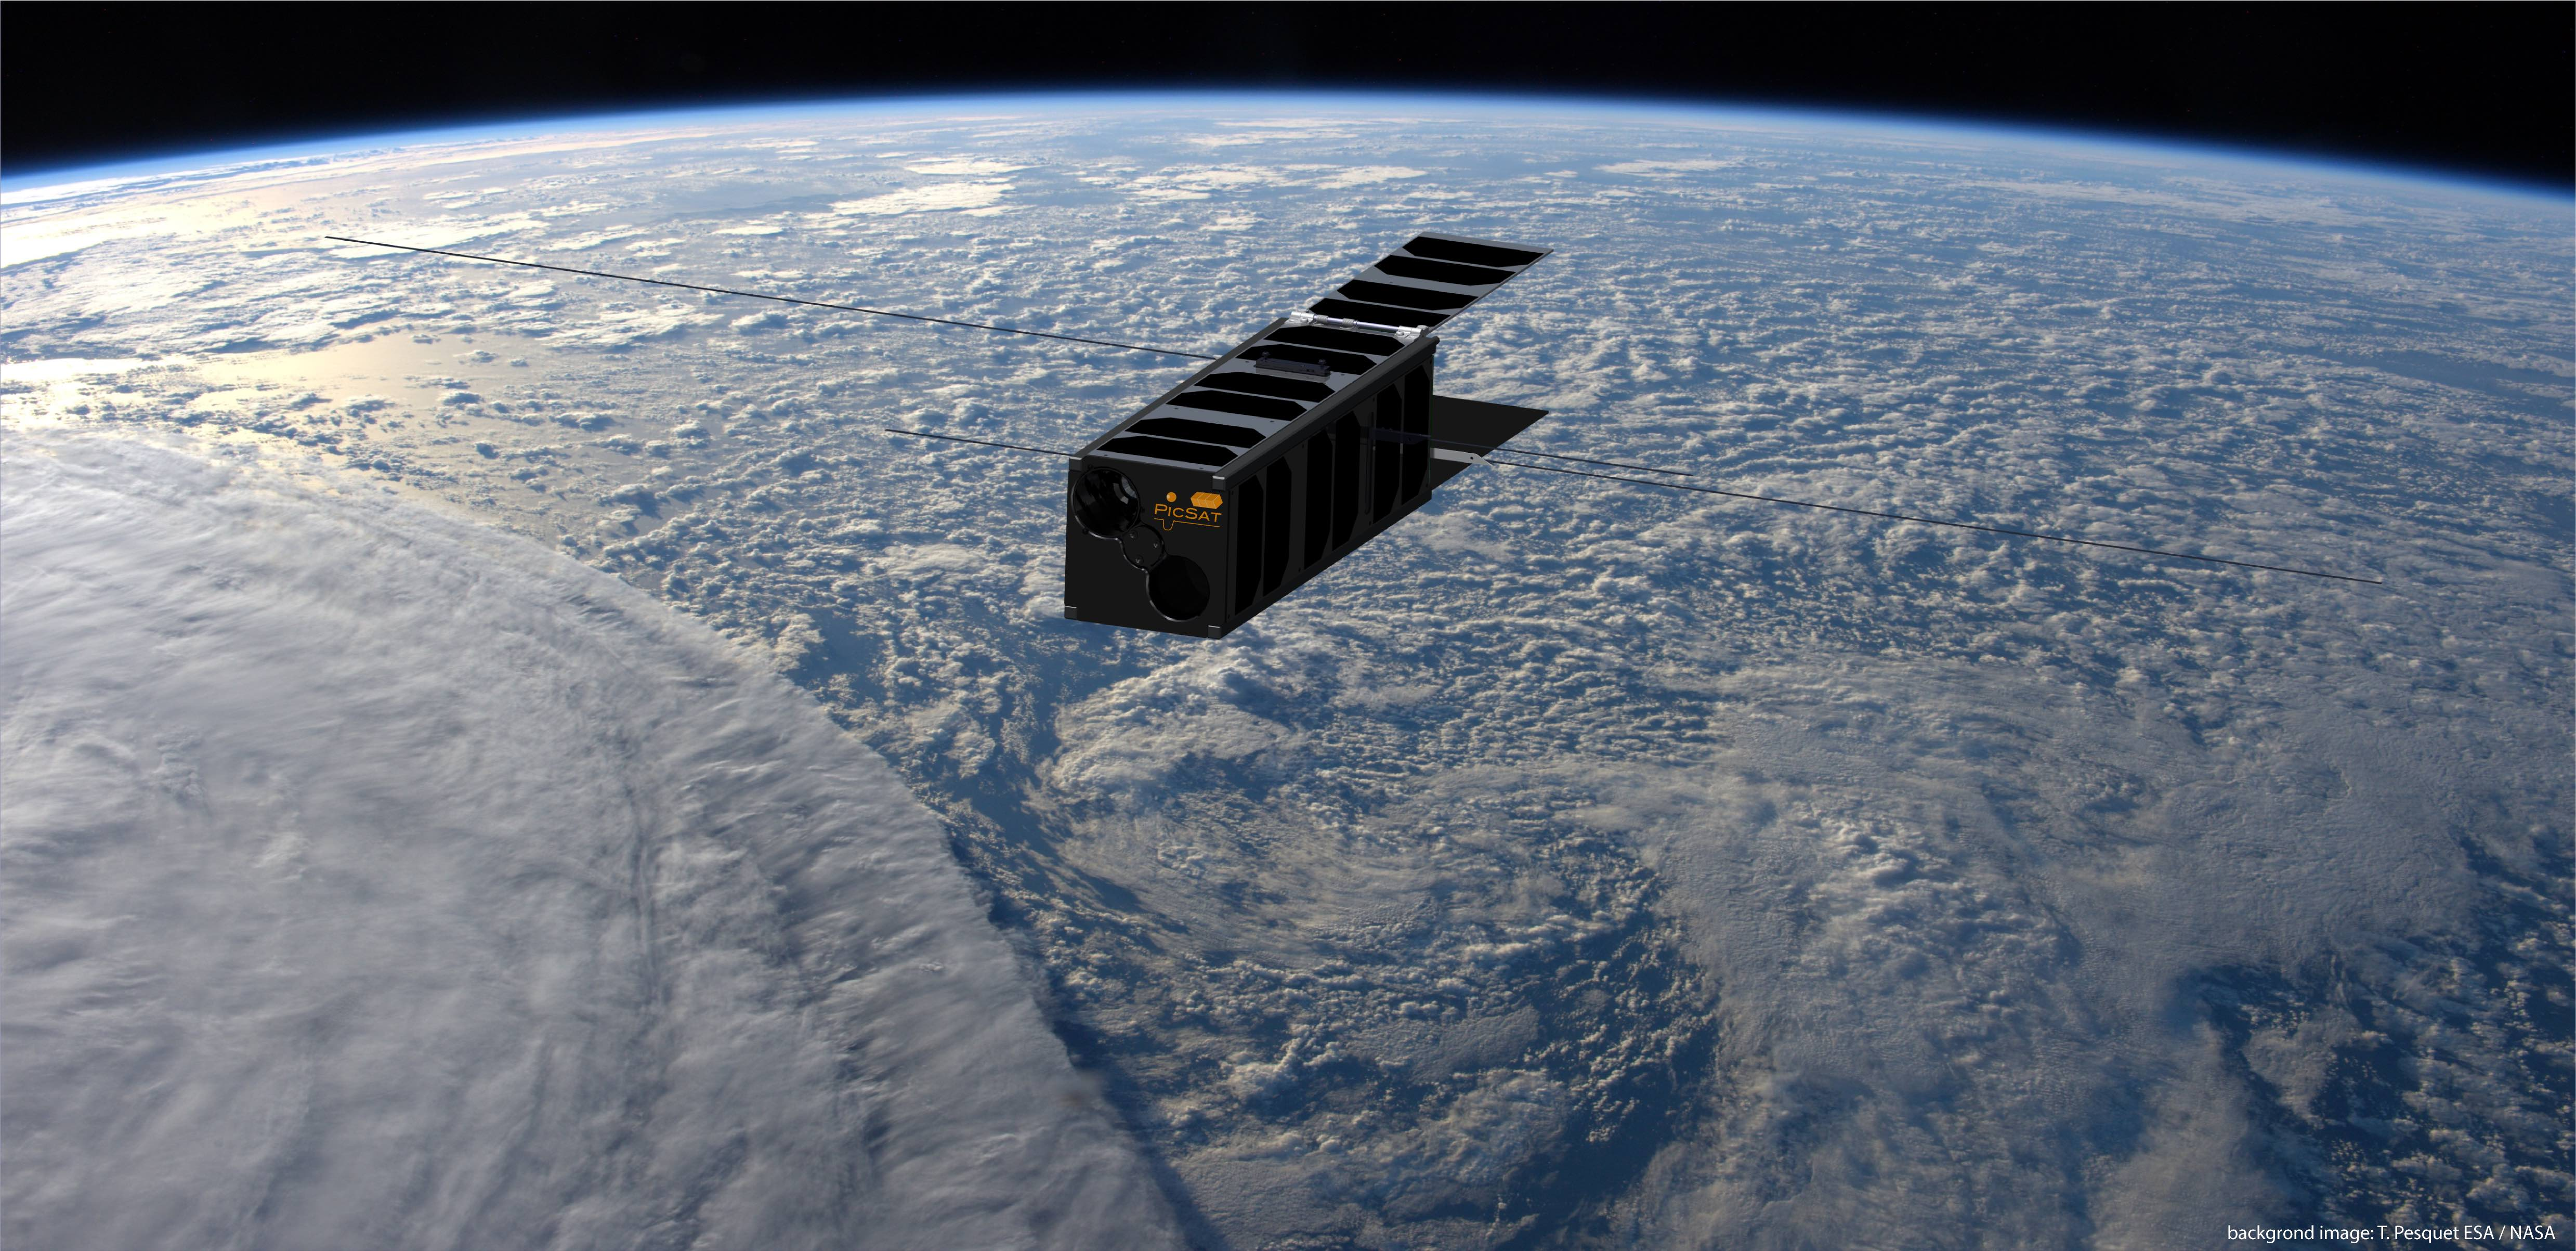 Picsat in orbit